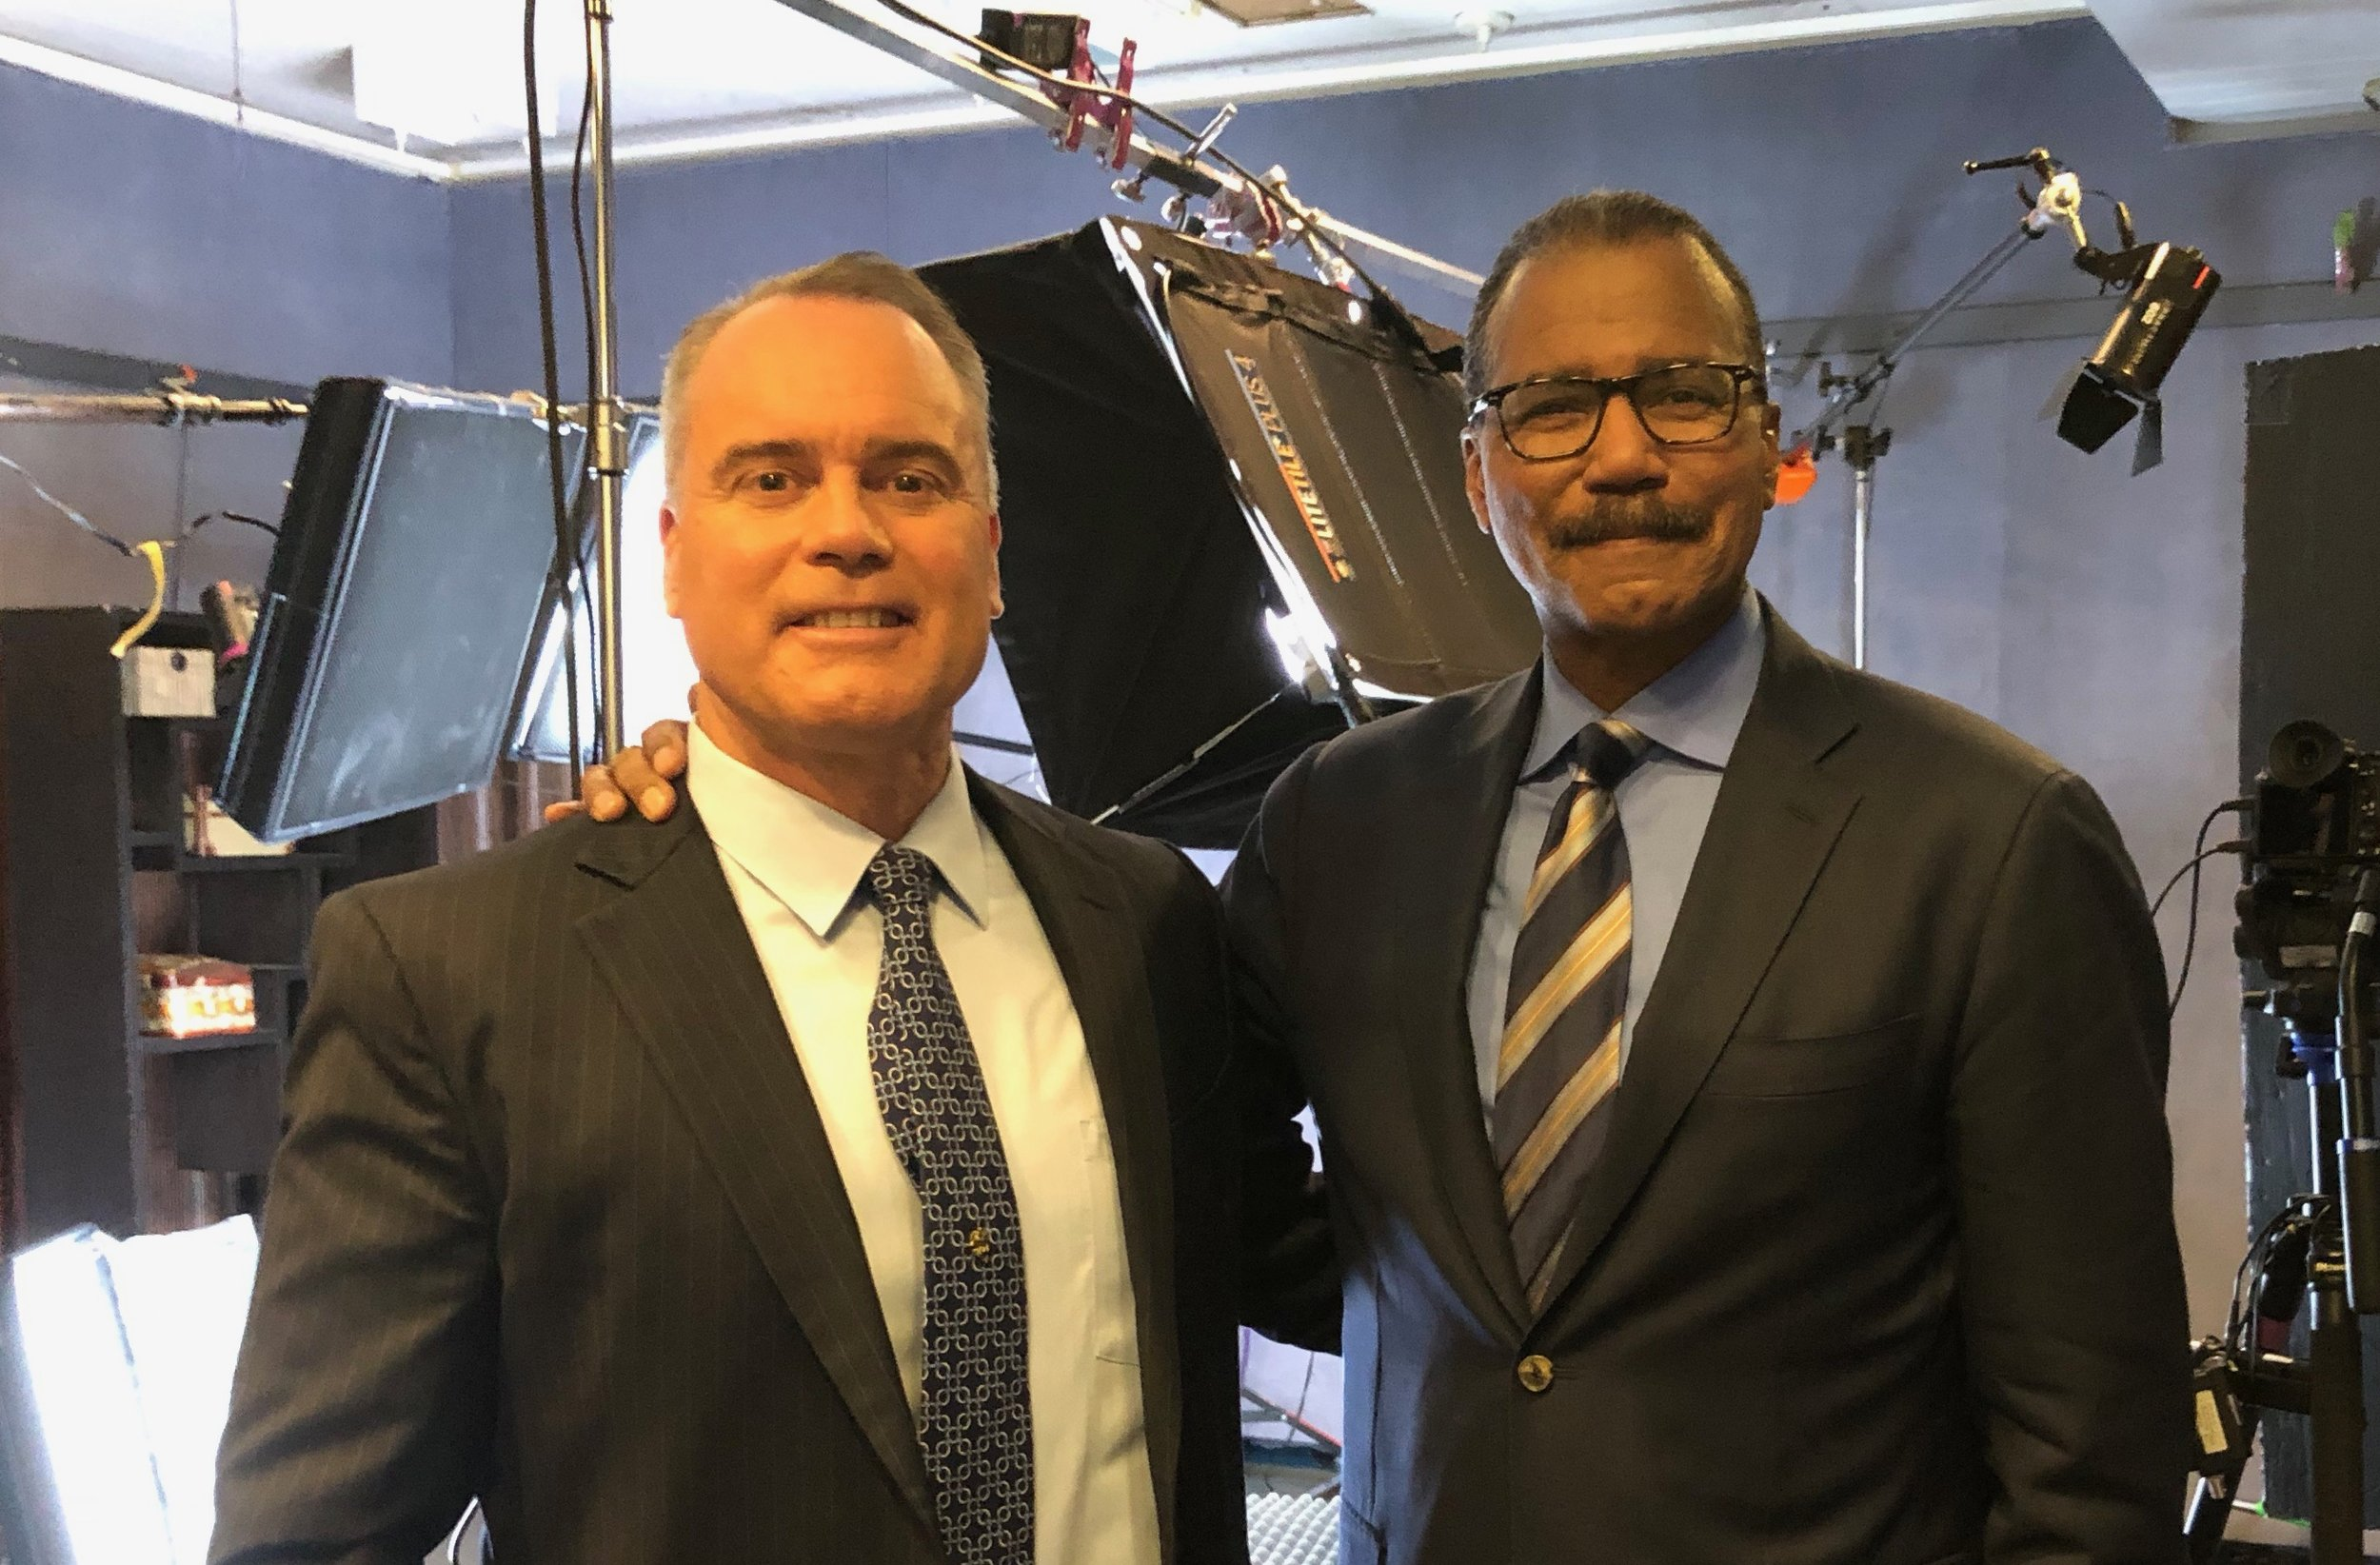 interviewed by 60 minutes - Bill Whitaker interviews Dr. Mulvaney on his ground-breaking medical research, seen here on the set of 60 Minutes in Manhattan.